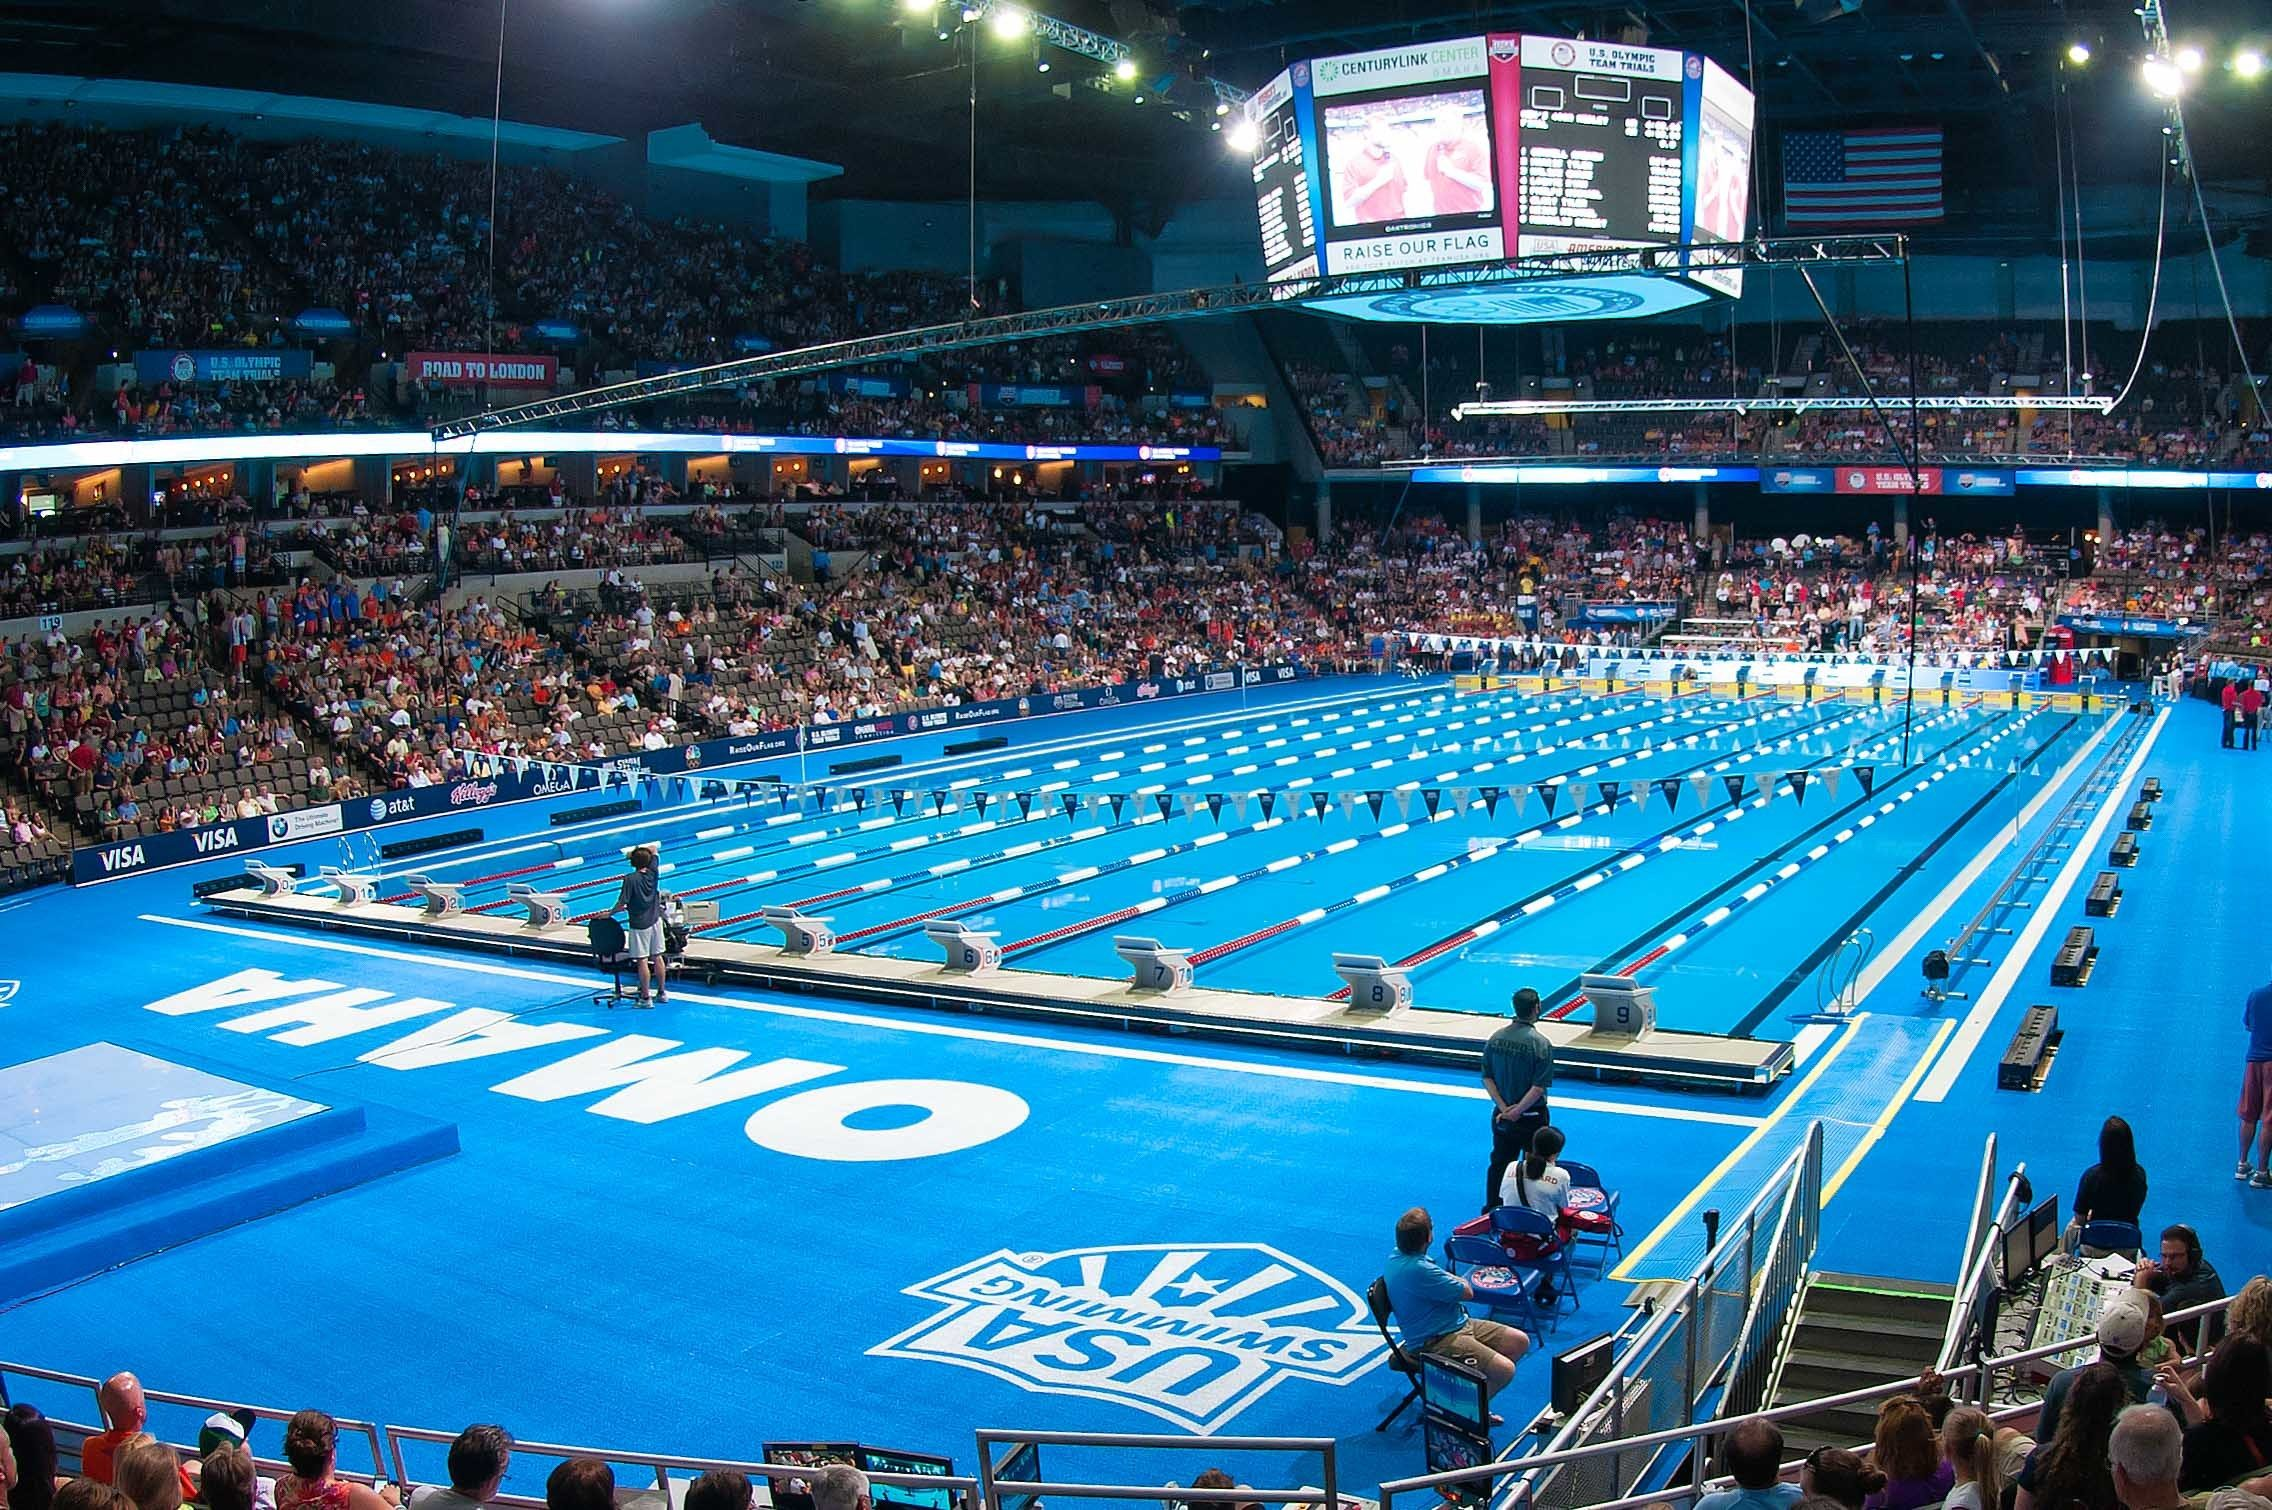 Swimmers Guide The World-wide Pool Directory